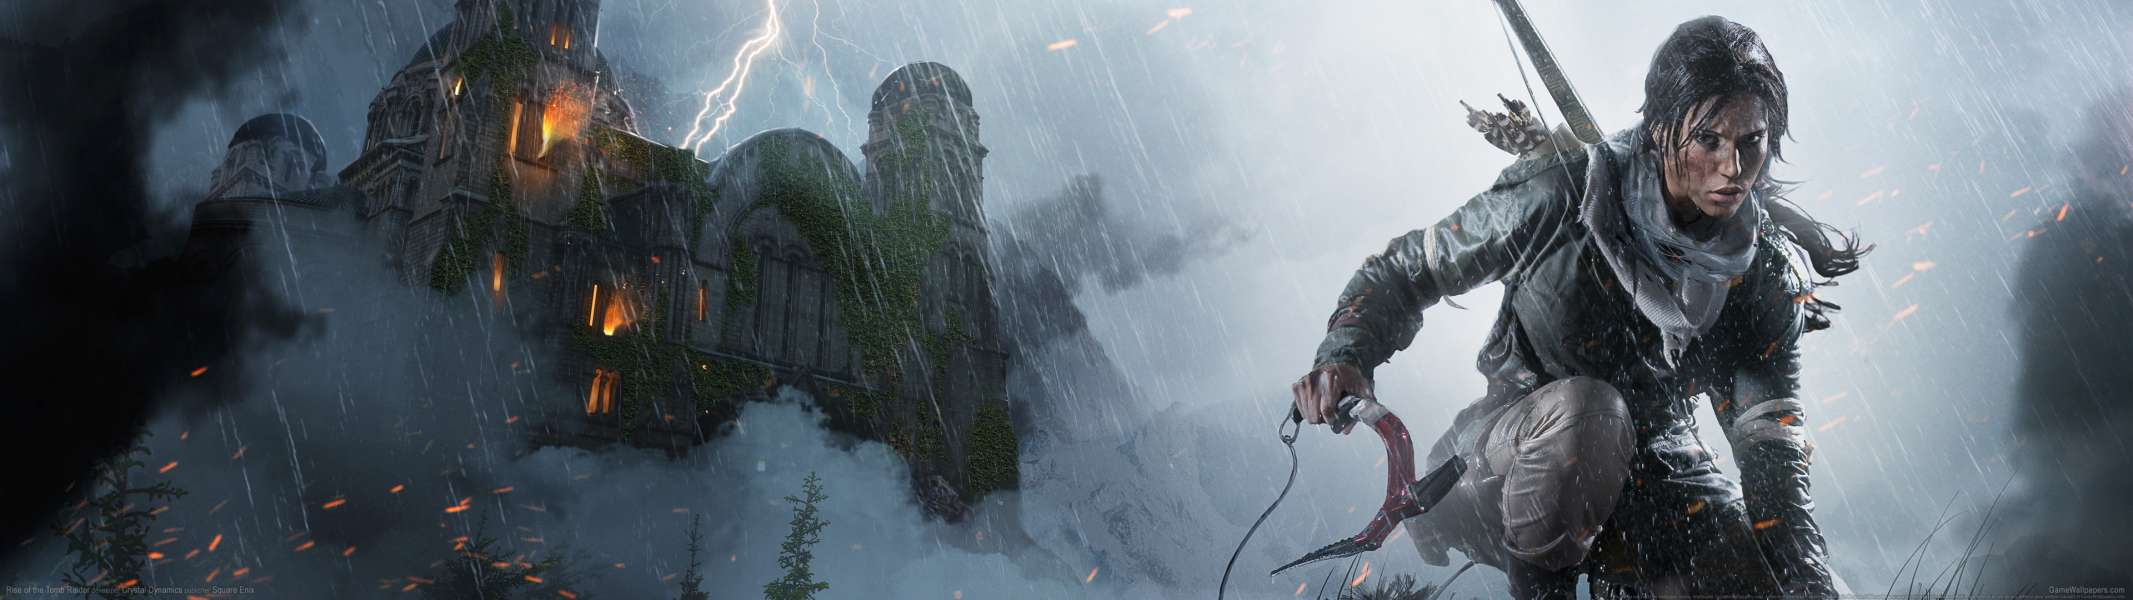 Rise of the Tomb Raider dual screen achtergrond